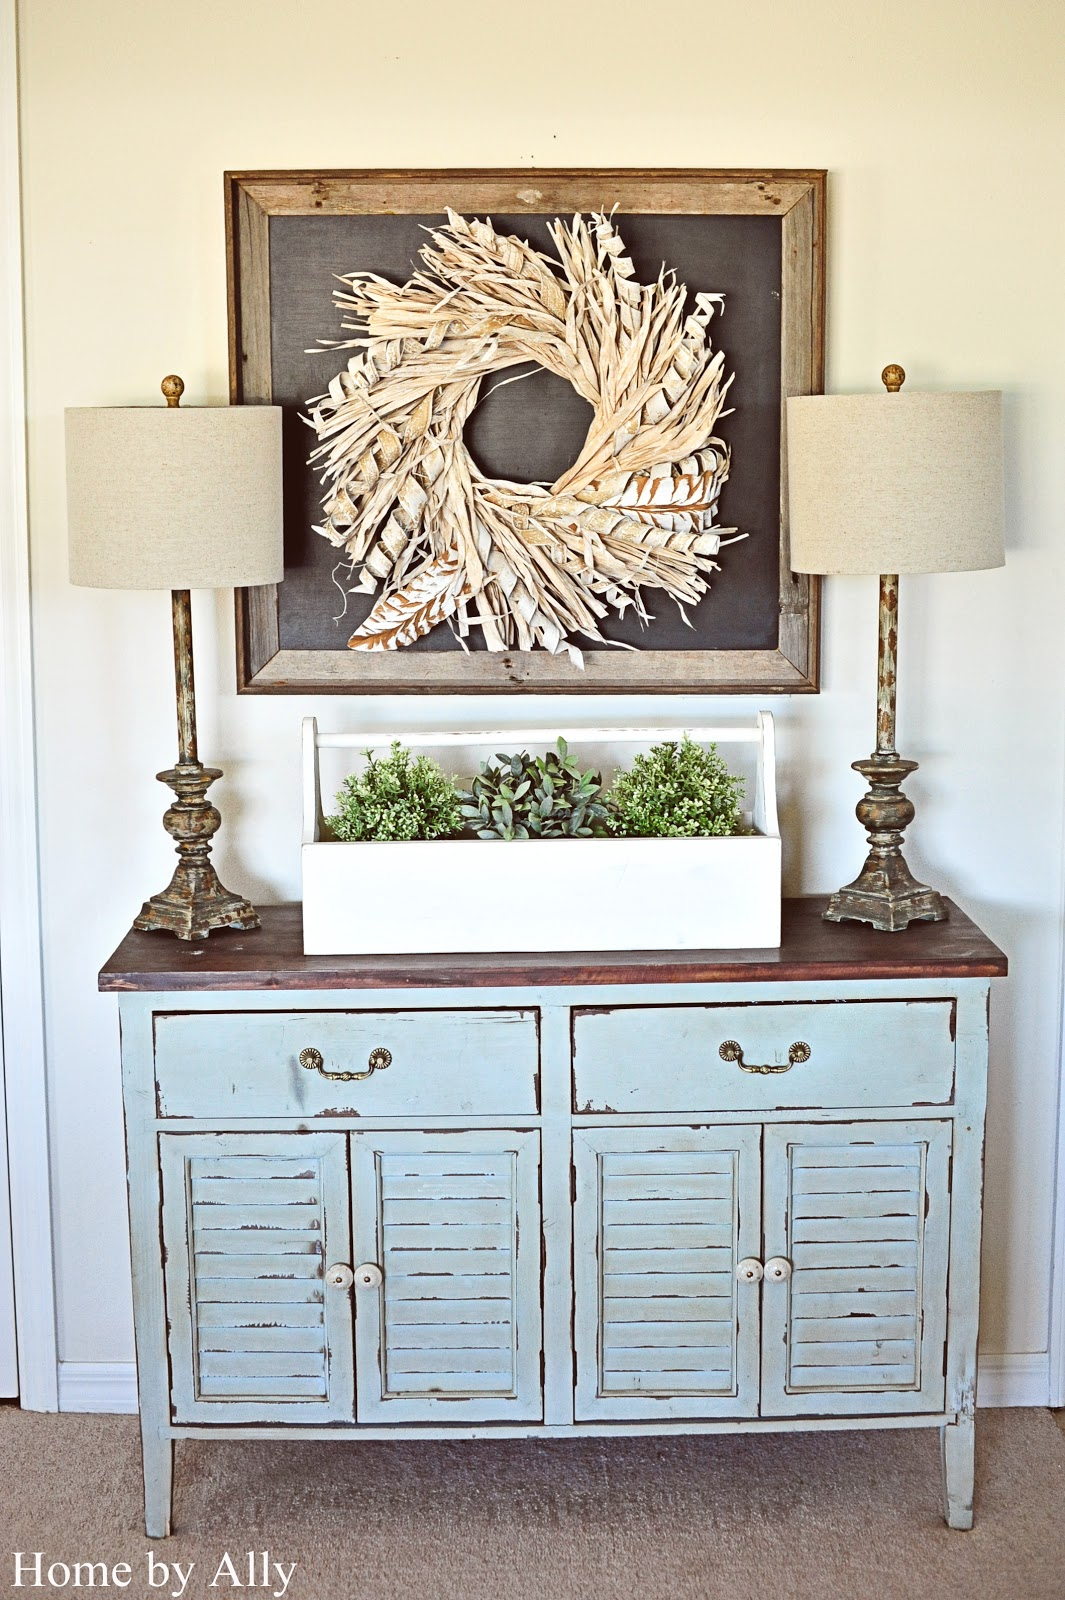 Home By Ally How To Add Character To Your Home 10 Easy